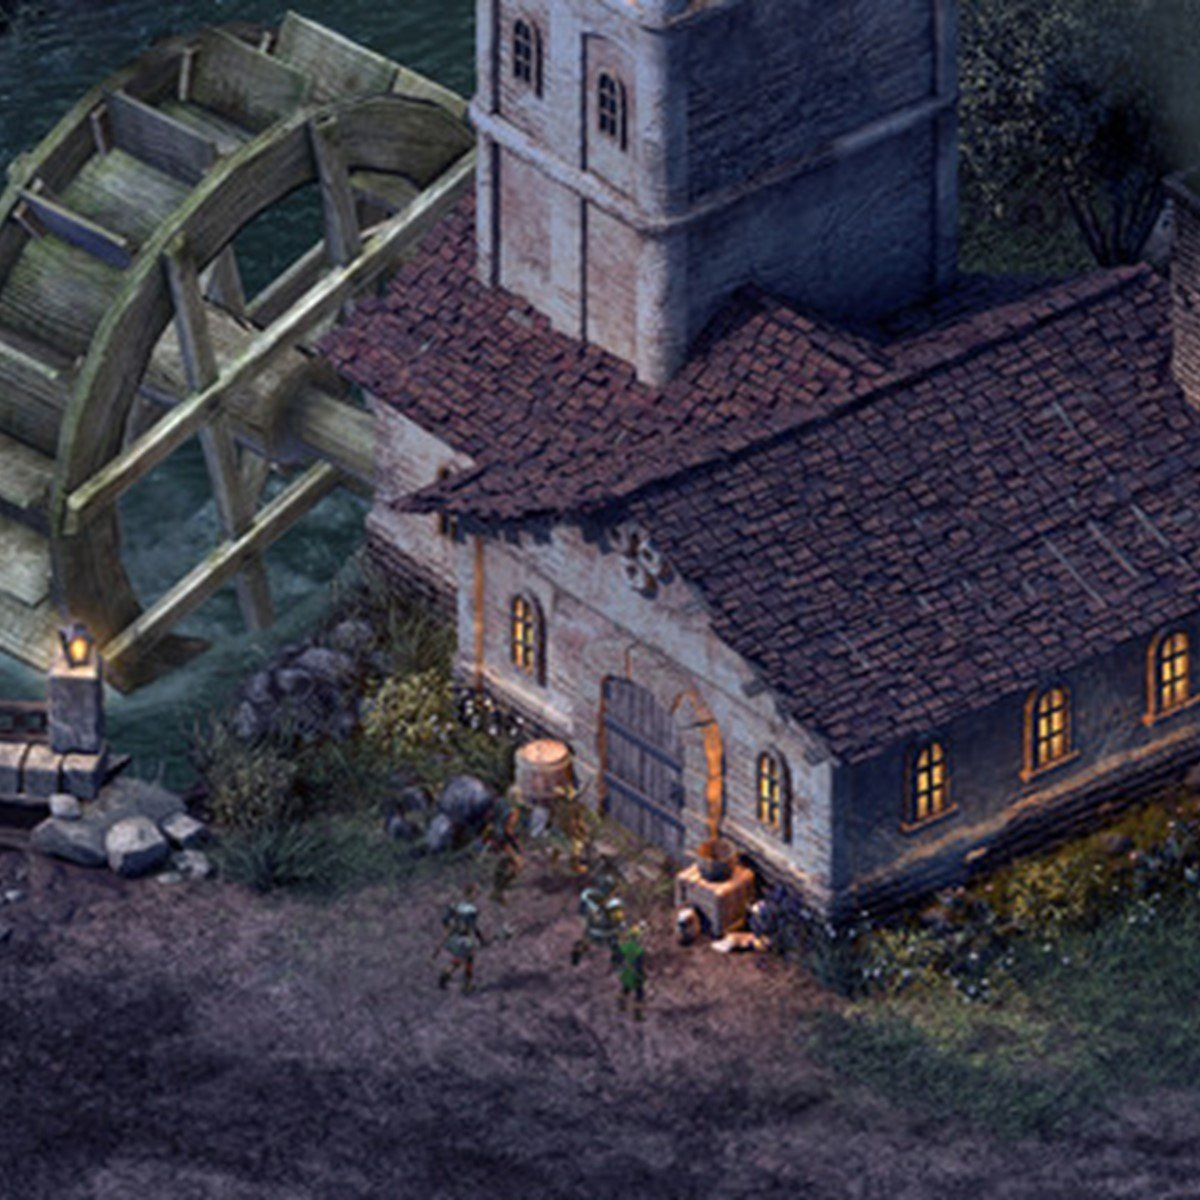 Pillars of Eternity Alternatives and Similar Games